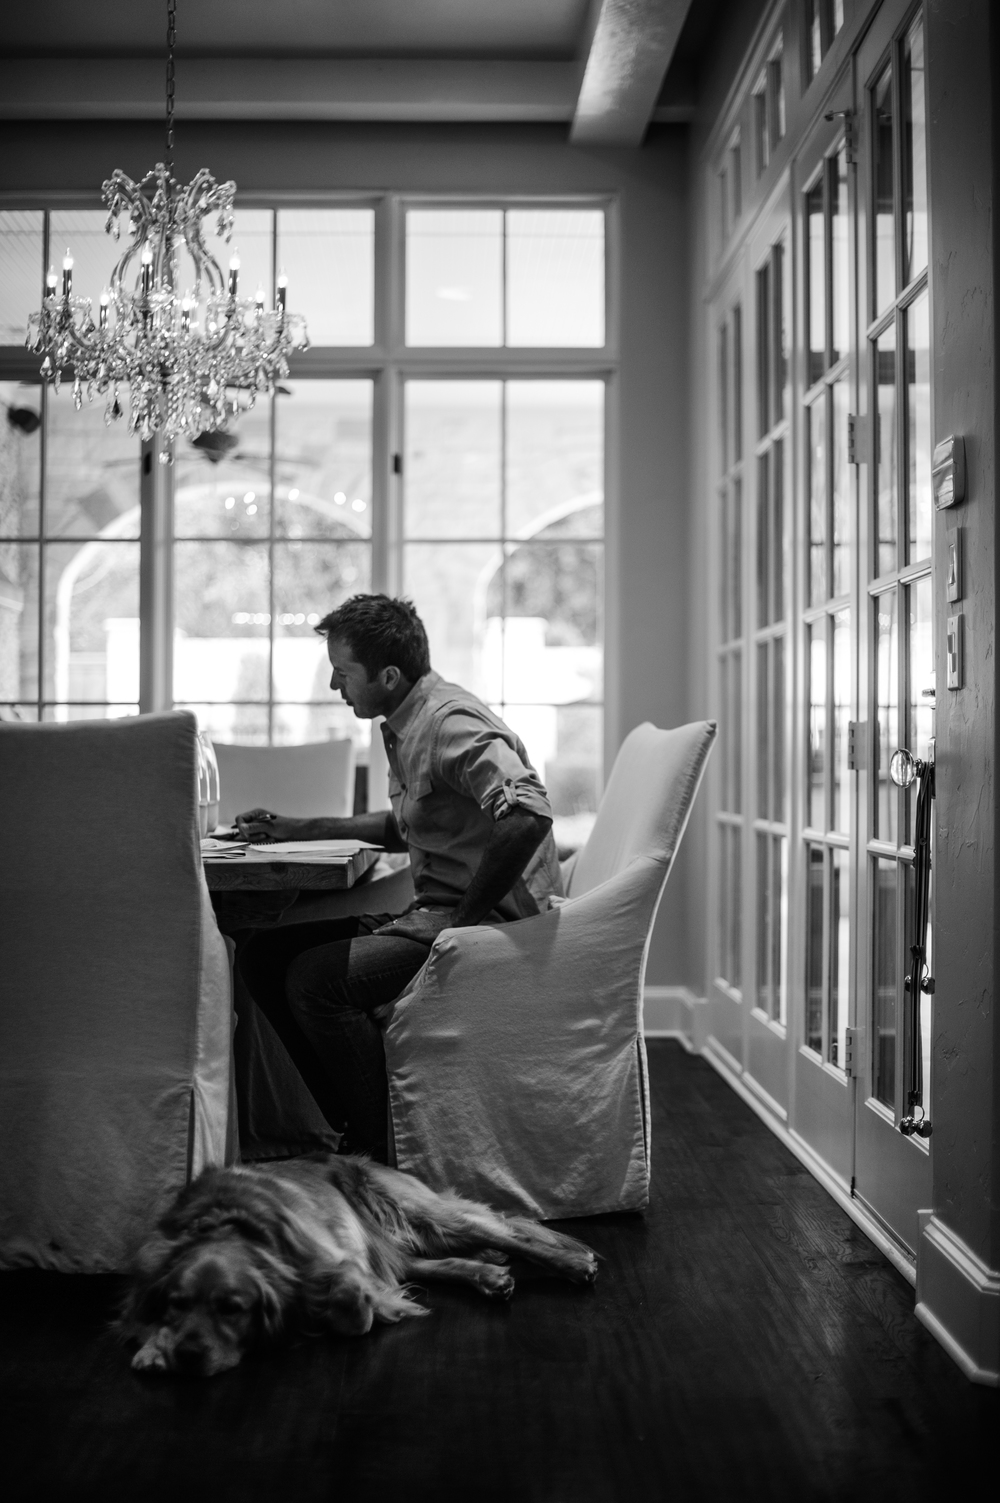 Mike Modano puts the finishing touches on his speech at home.